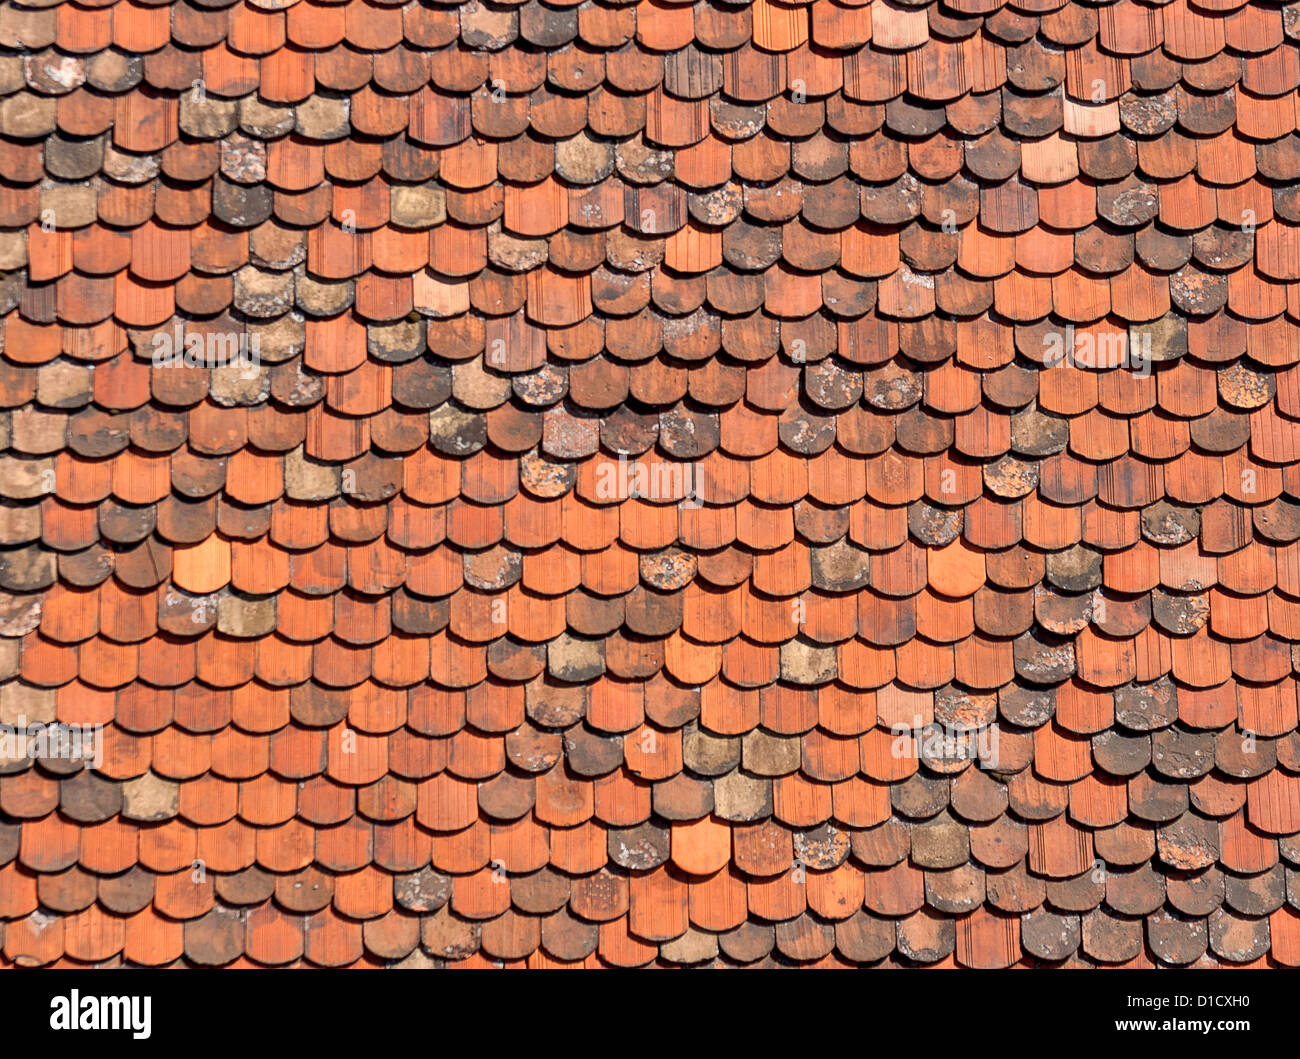 Attractive Old Red Brick Roof Tiles From Zagreb, Croatia.